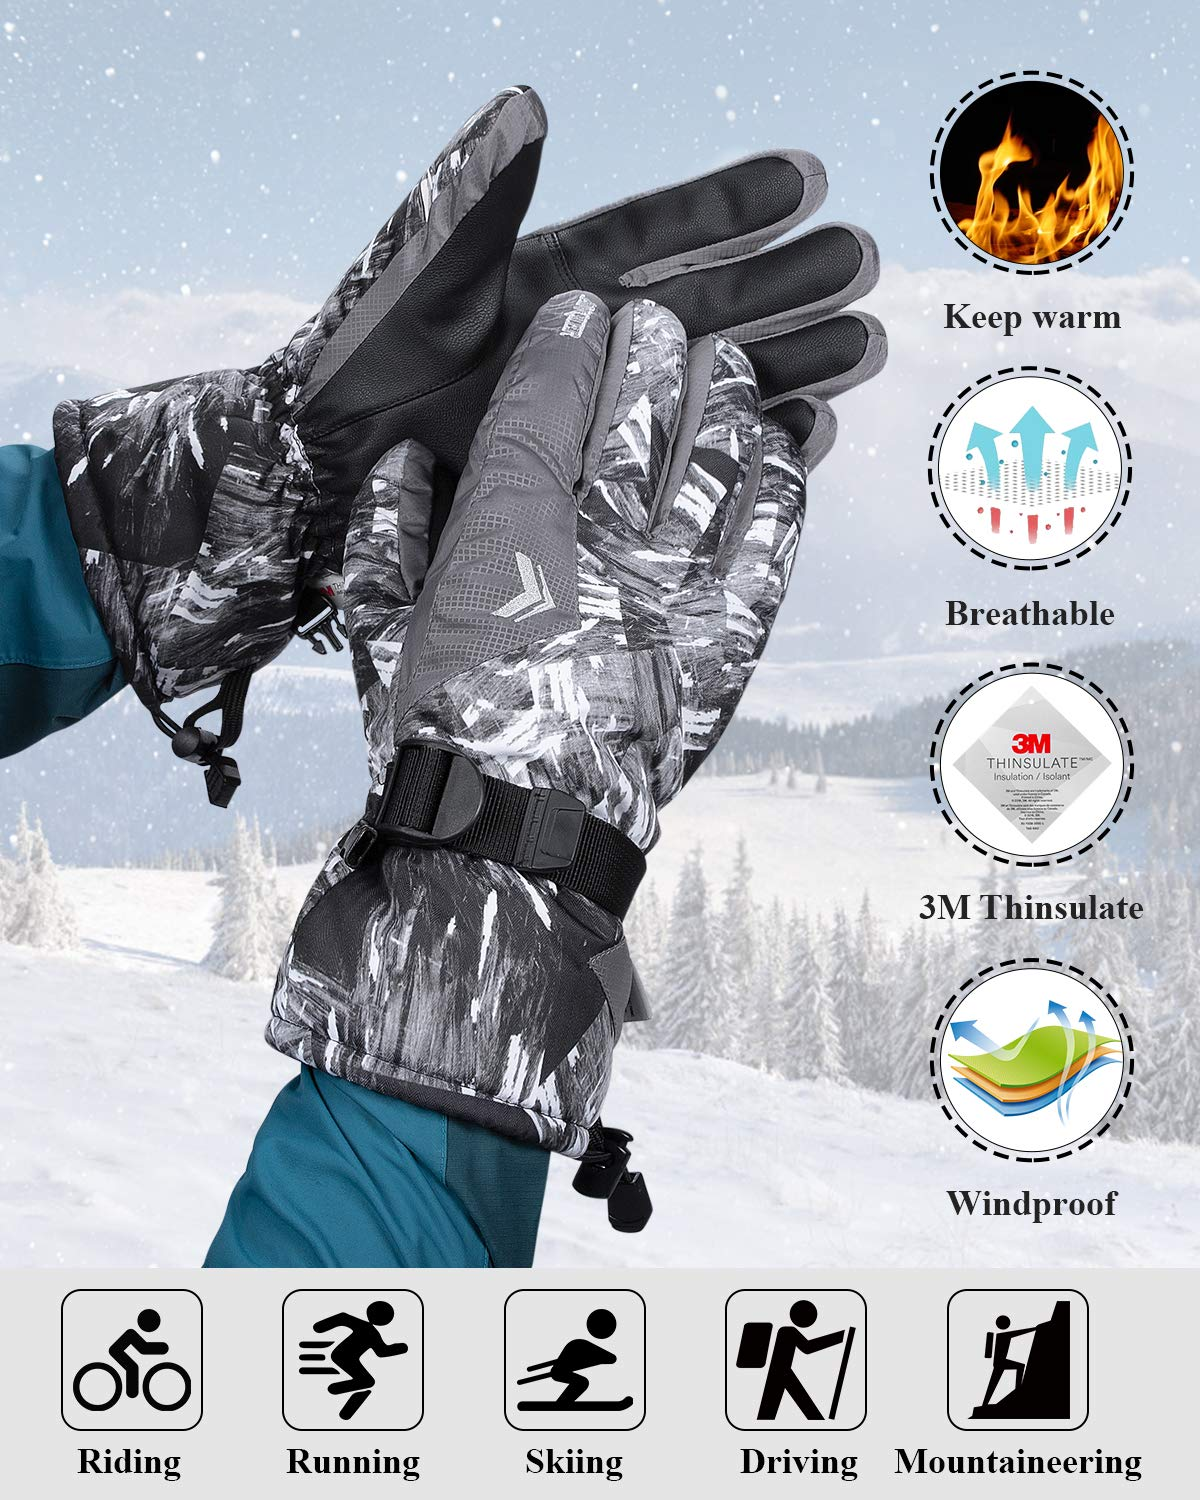 FengNiao Ski Gloves Winter Thermal Waterproof Gloves Snowboard 3M Thinsulate Snow Snowmobile Gloves for Men Women